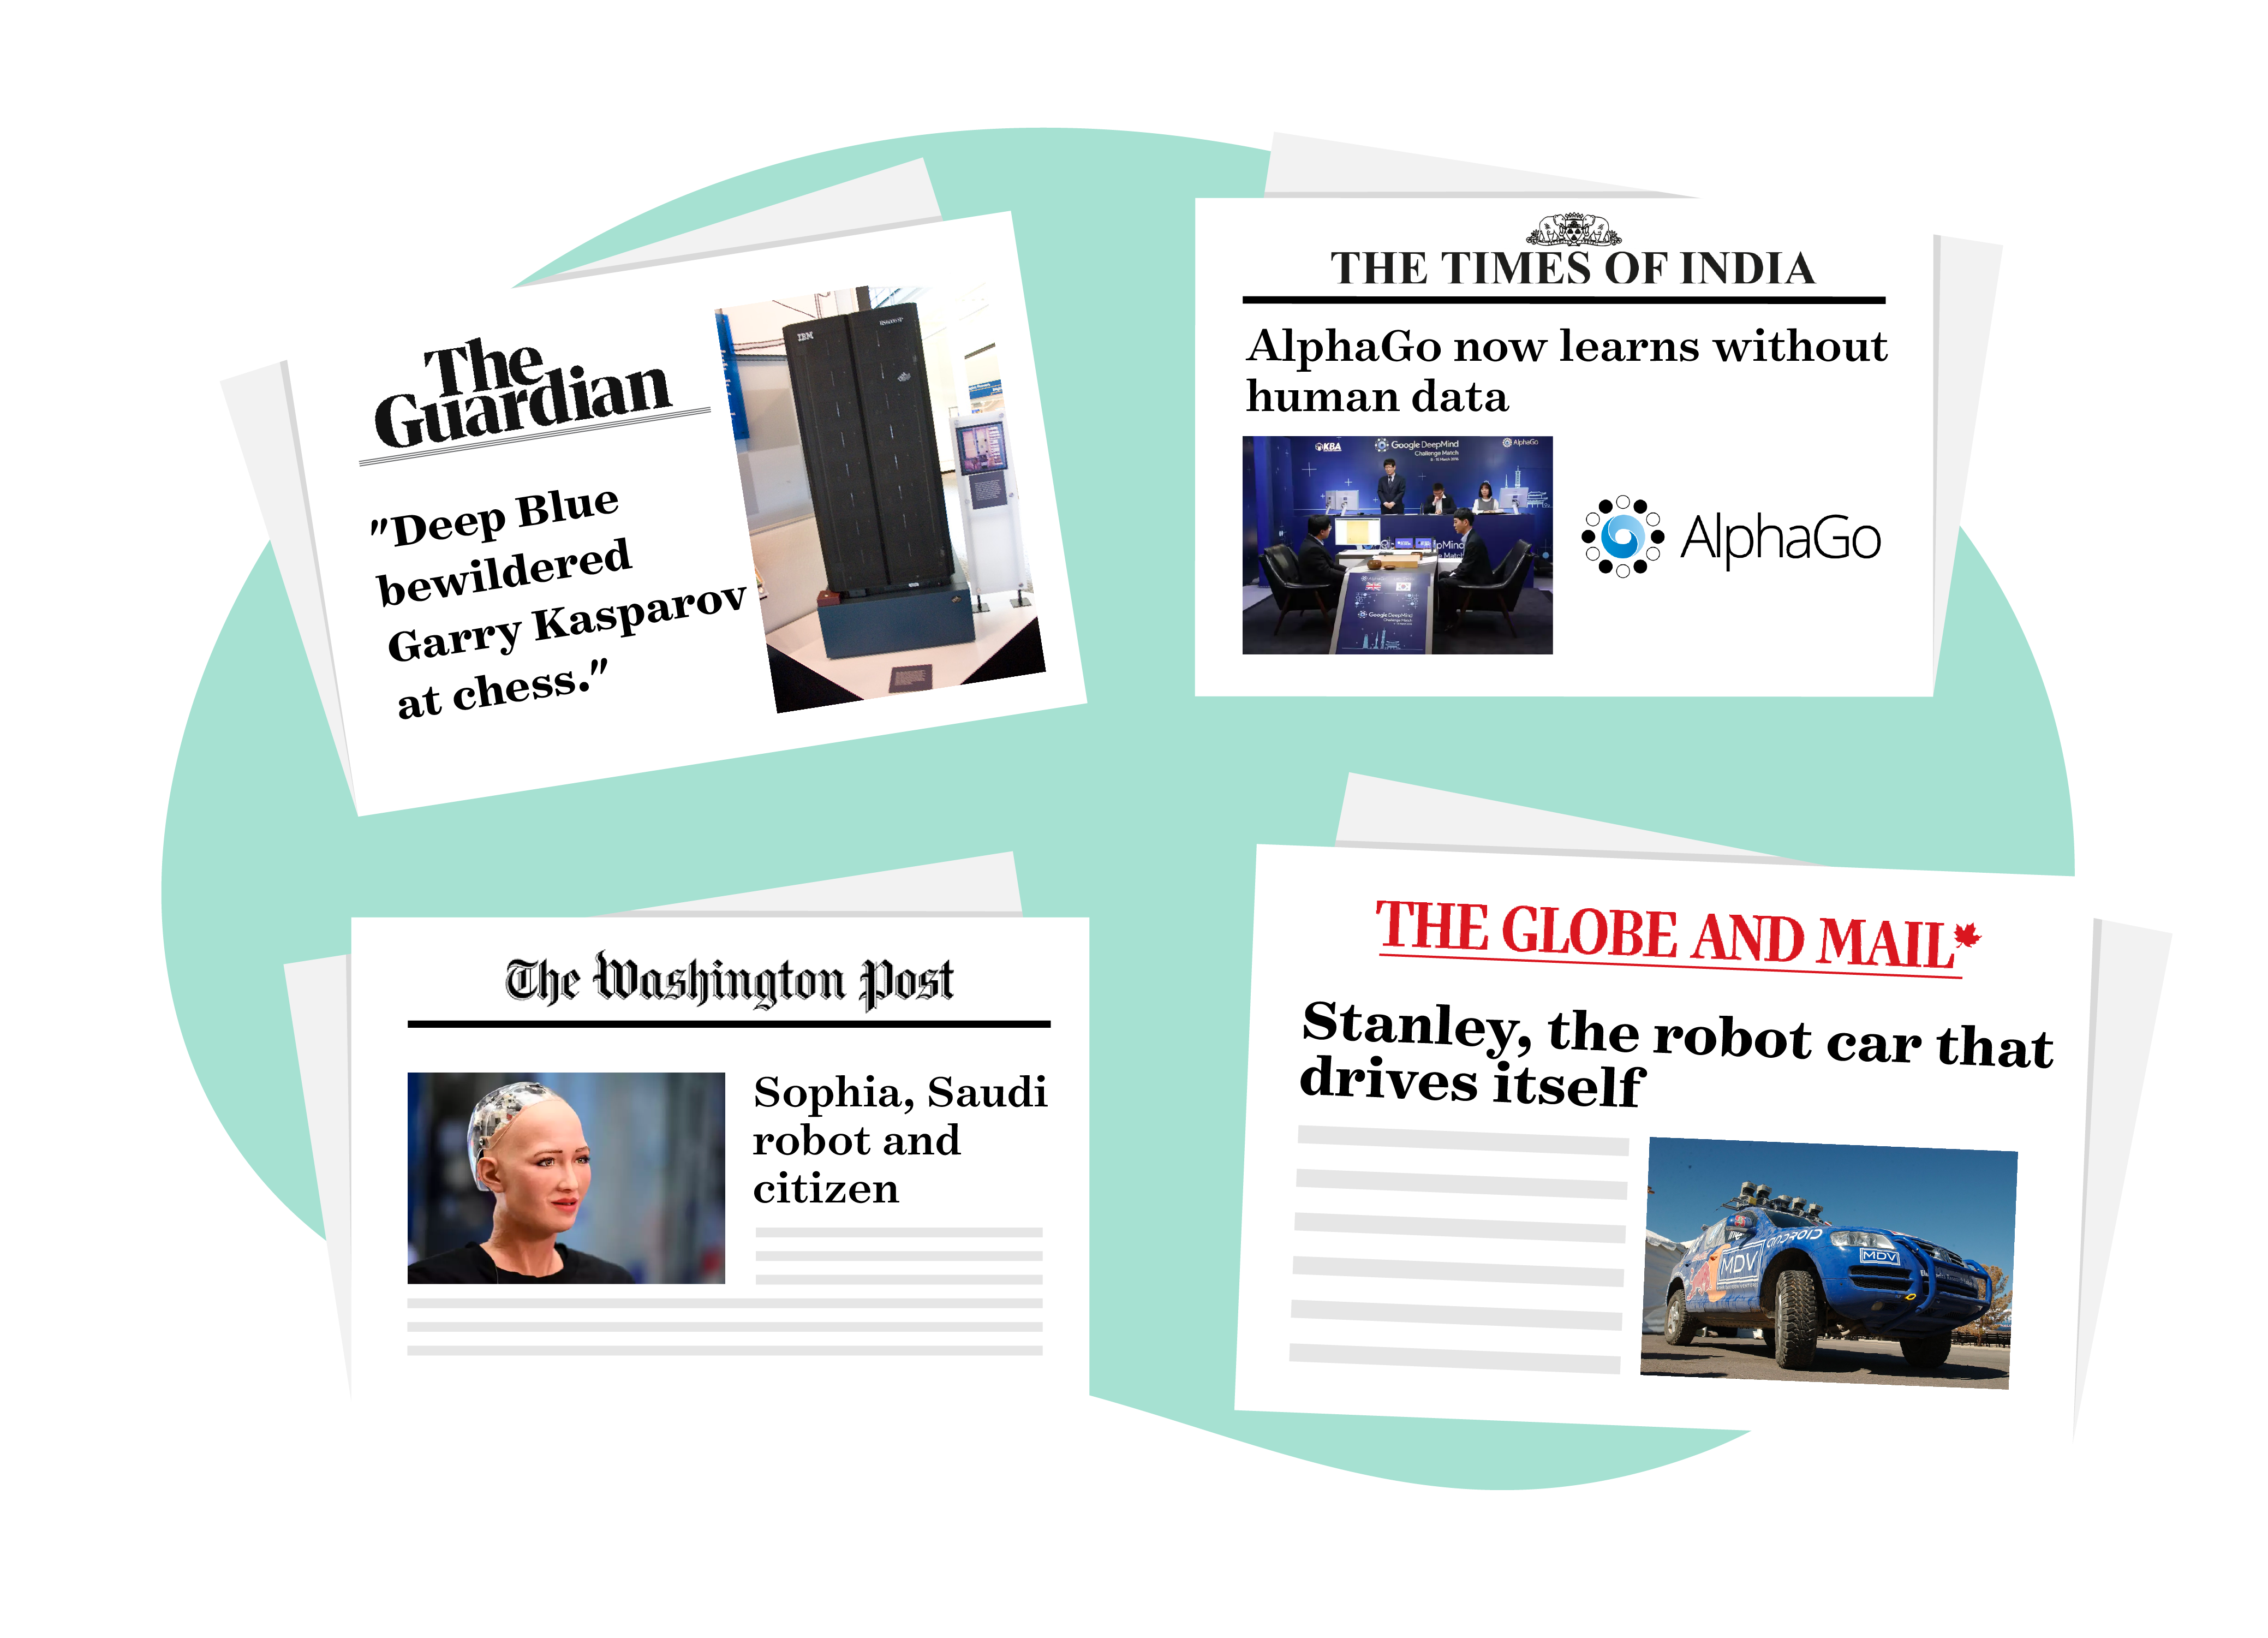 Some examples of AI making headlines in the news: Deep Blue, AlphaGo, Sophia (of Hanson Robotics), and Stanley the world's first self-driving car